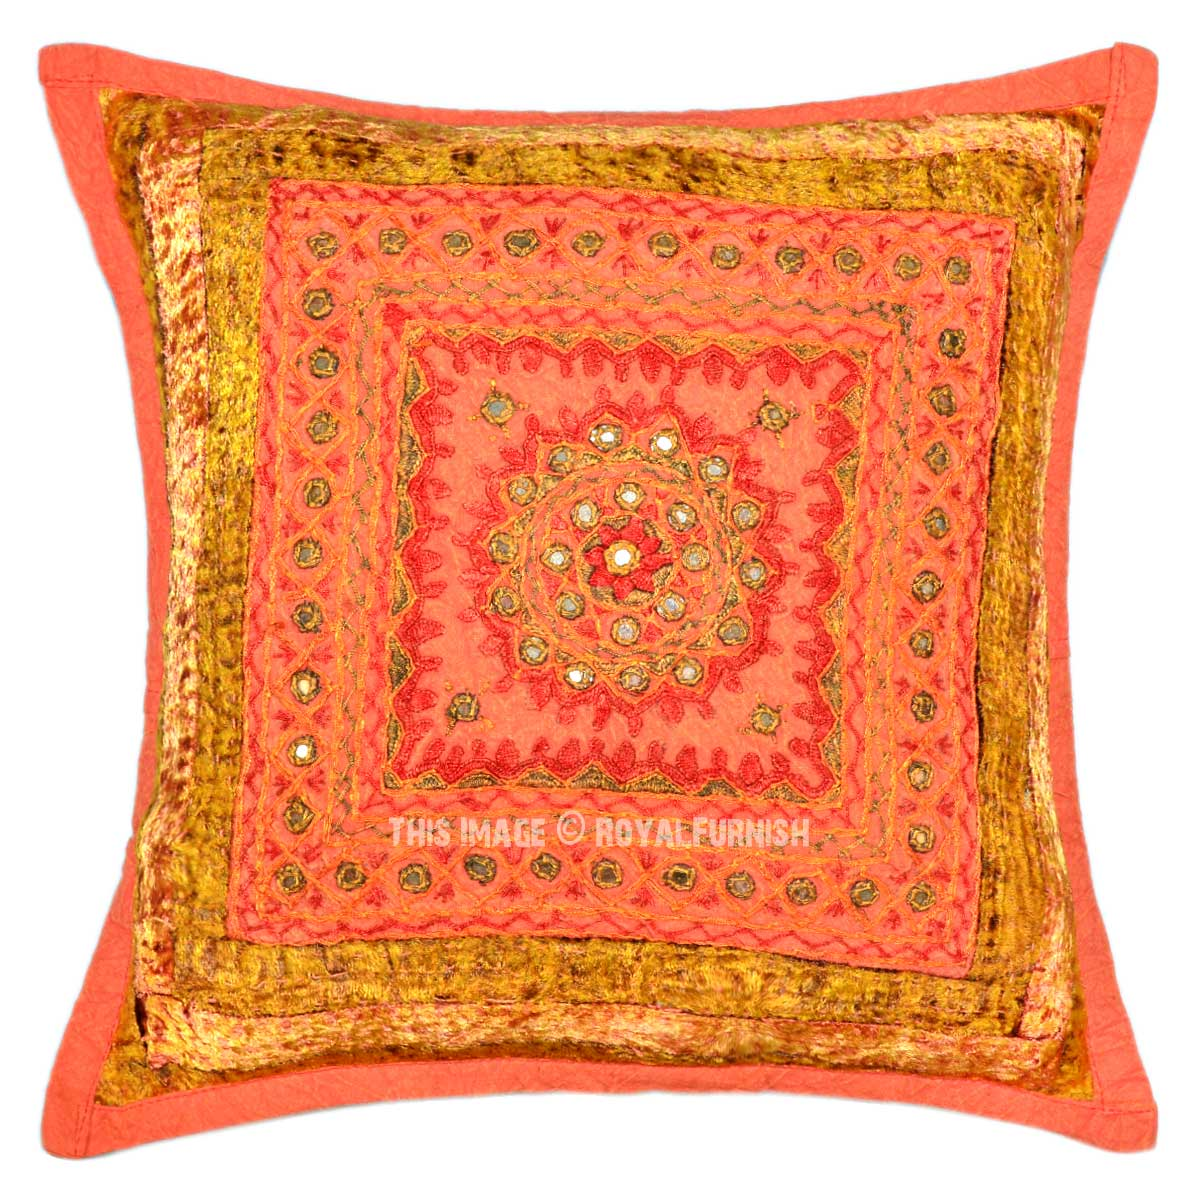 Handmade Decorative Throw Pillows : Orange Multi Unique One-Of-A-Kind Handmade Decorative Mirror Pillow Case 16X16 - RoyalFurnish.com